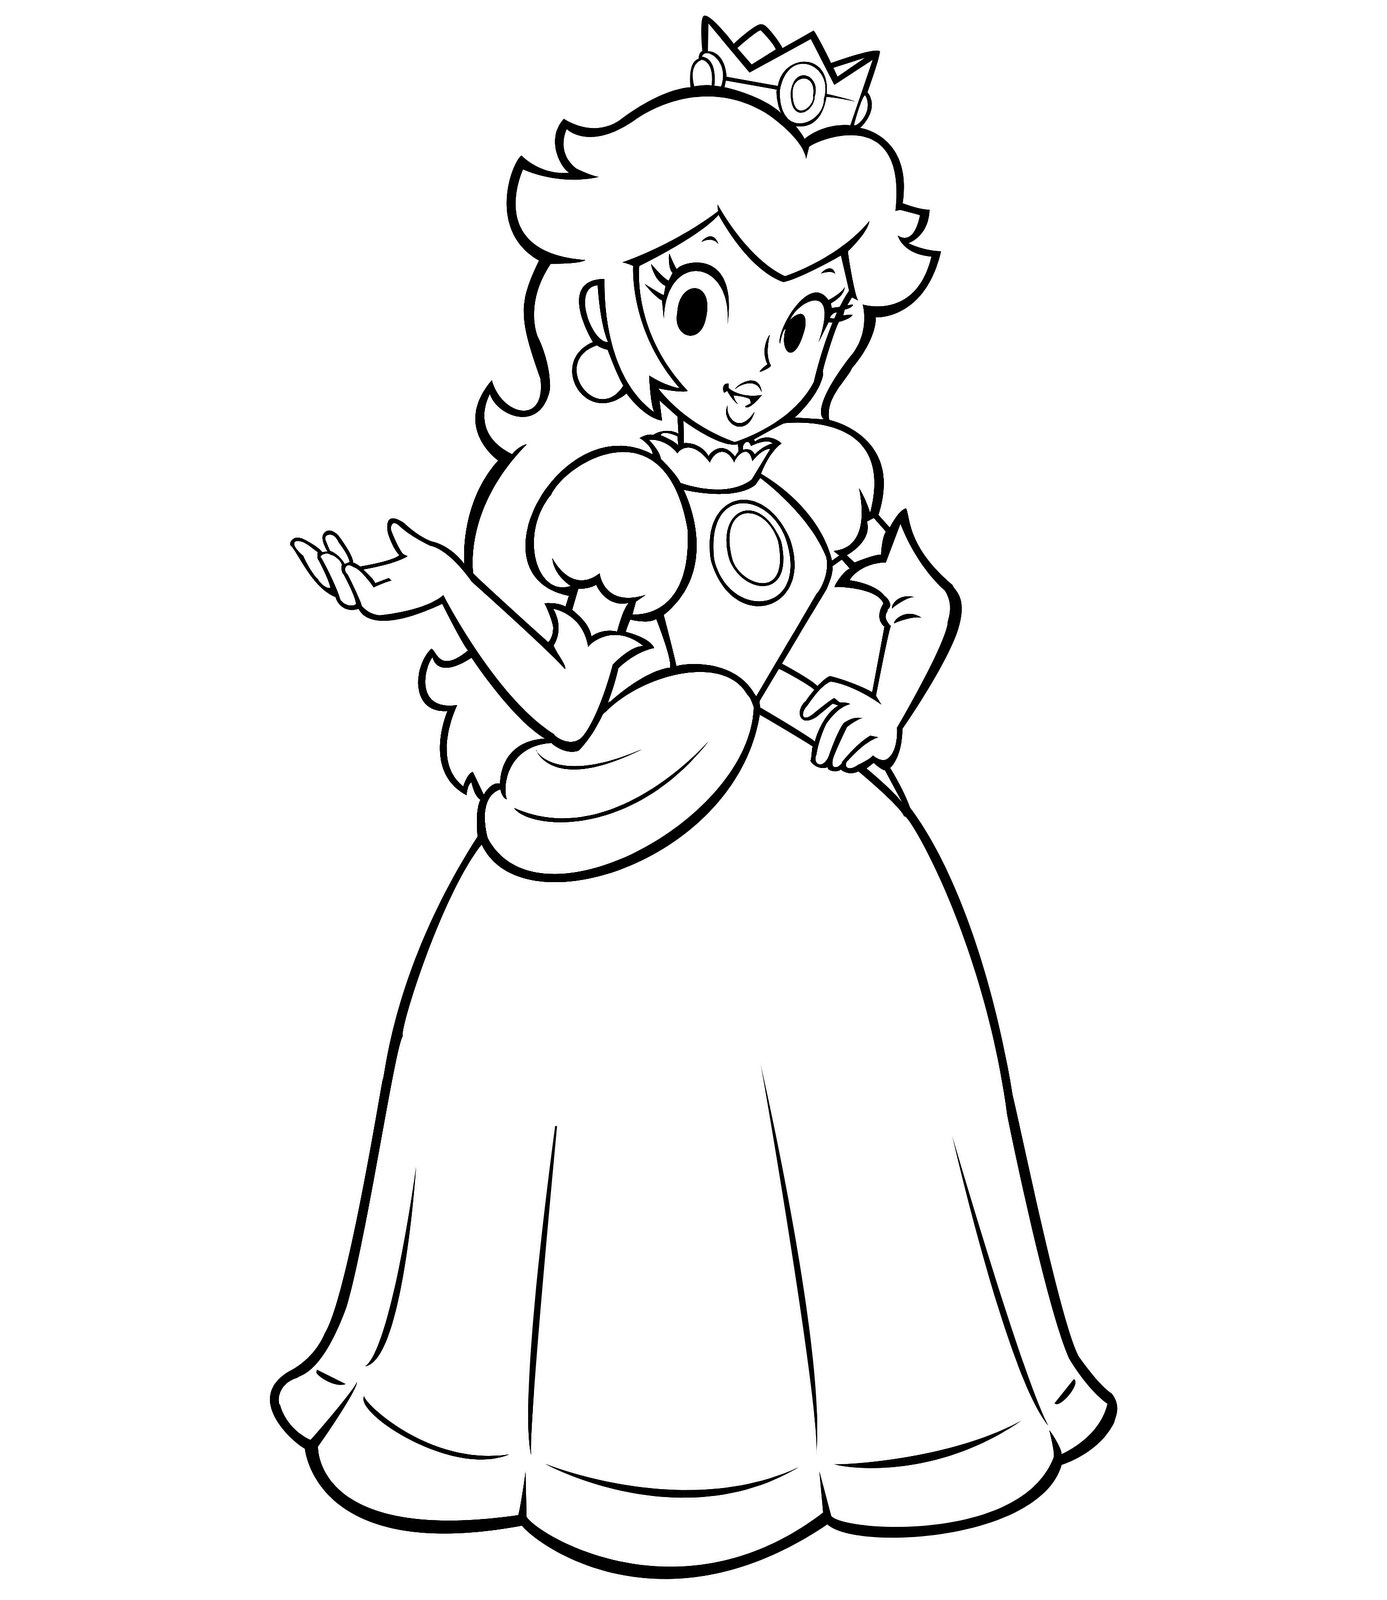 princess peach coloring pages - photo#4